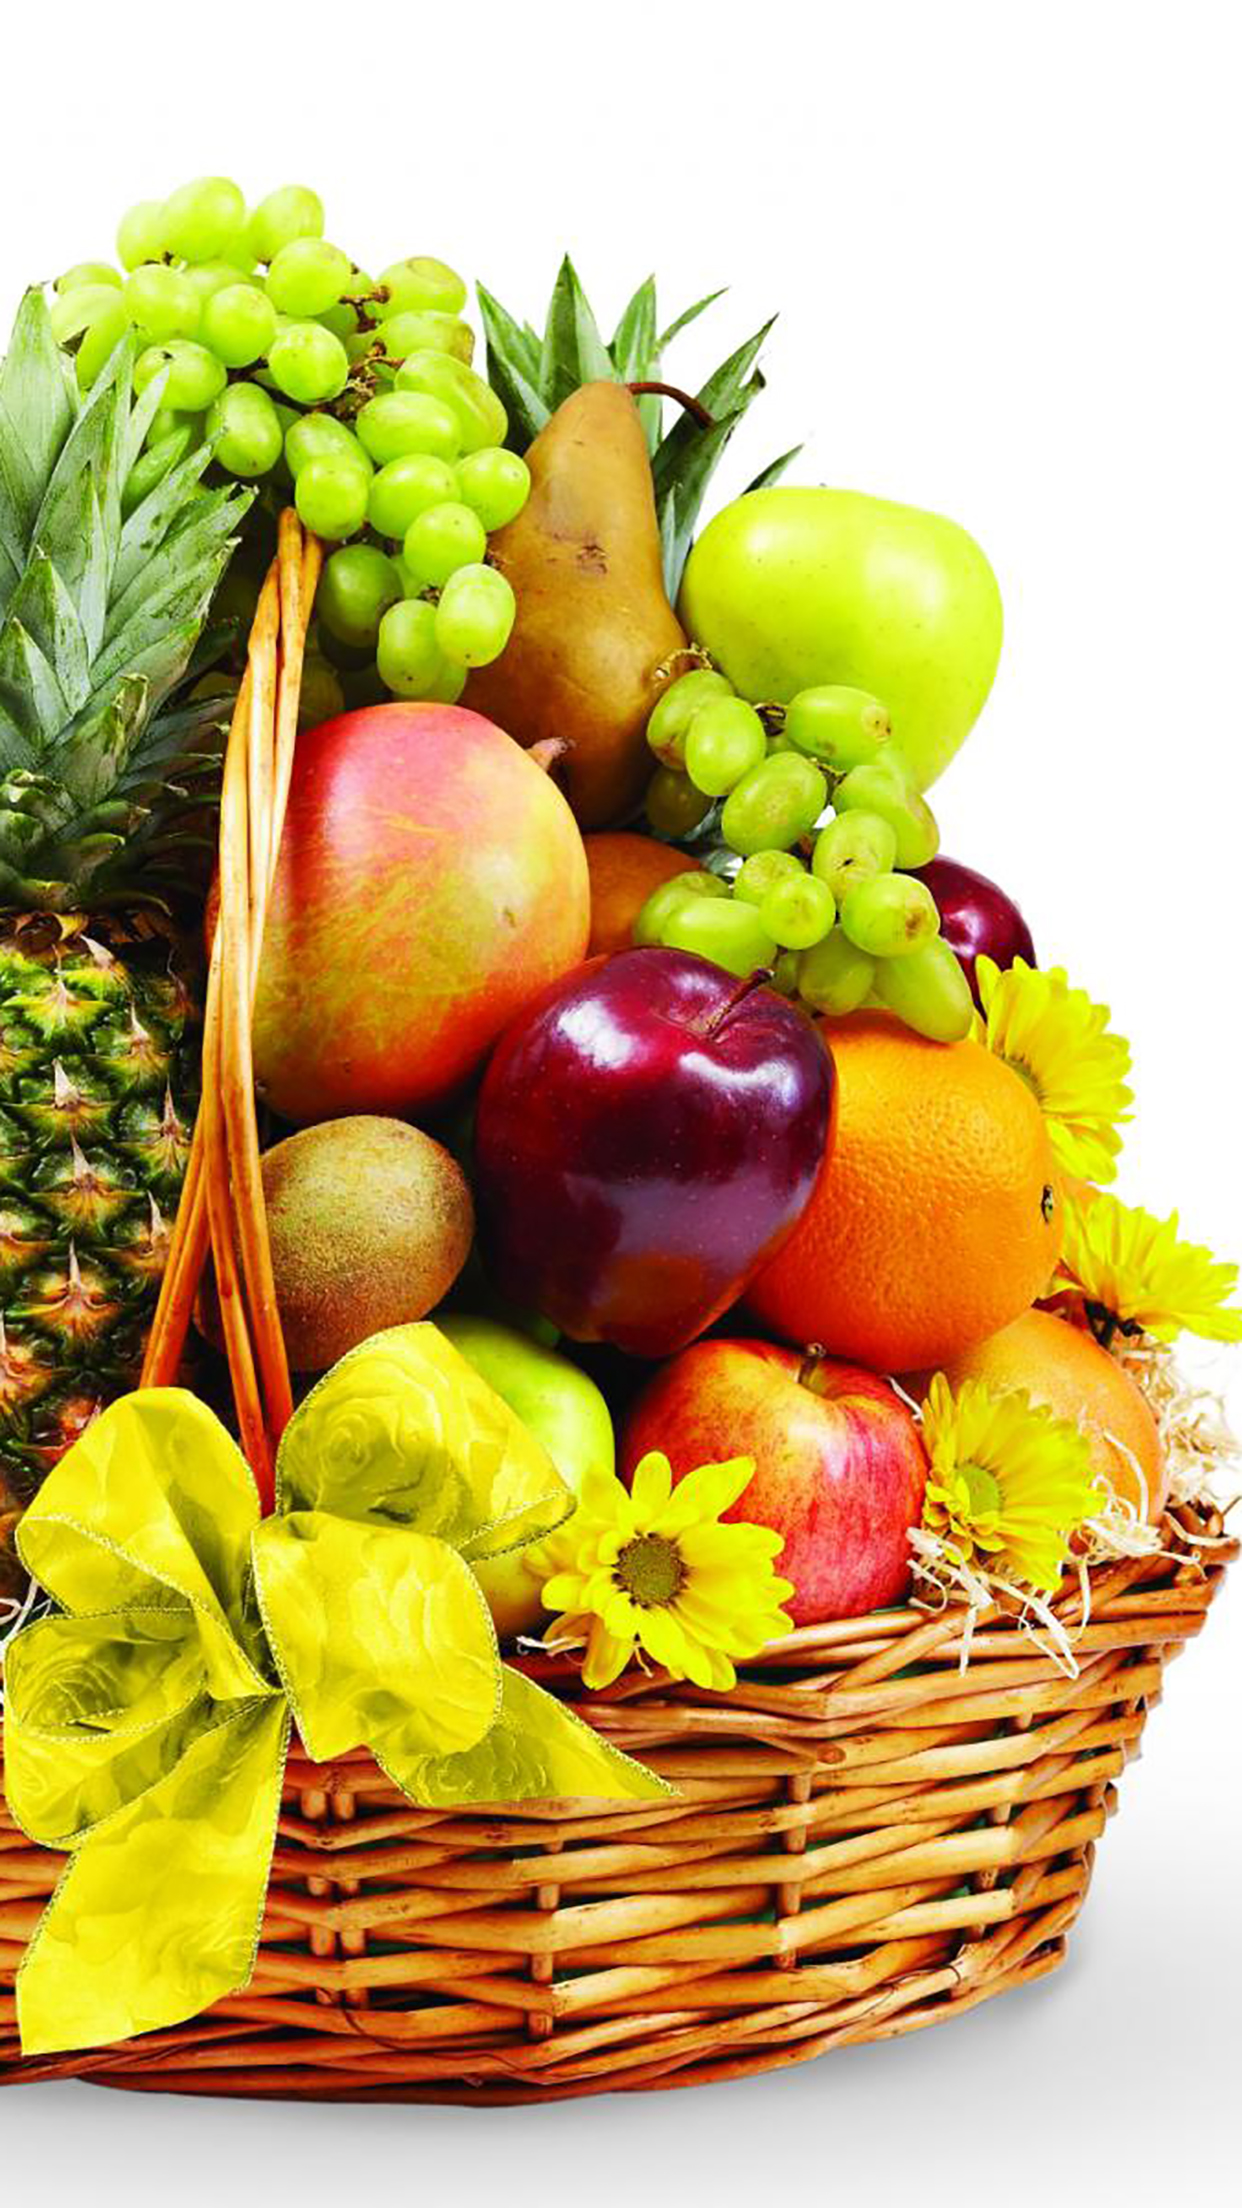 Wallpaper fruits free download - Share This